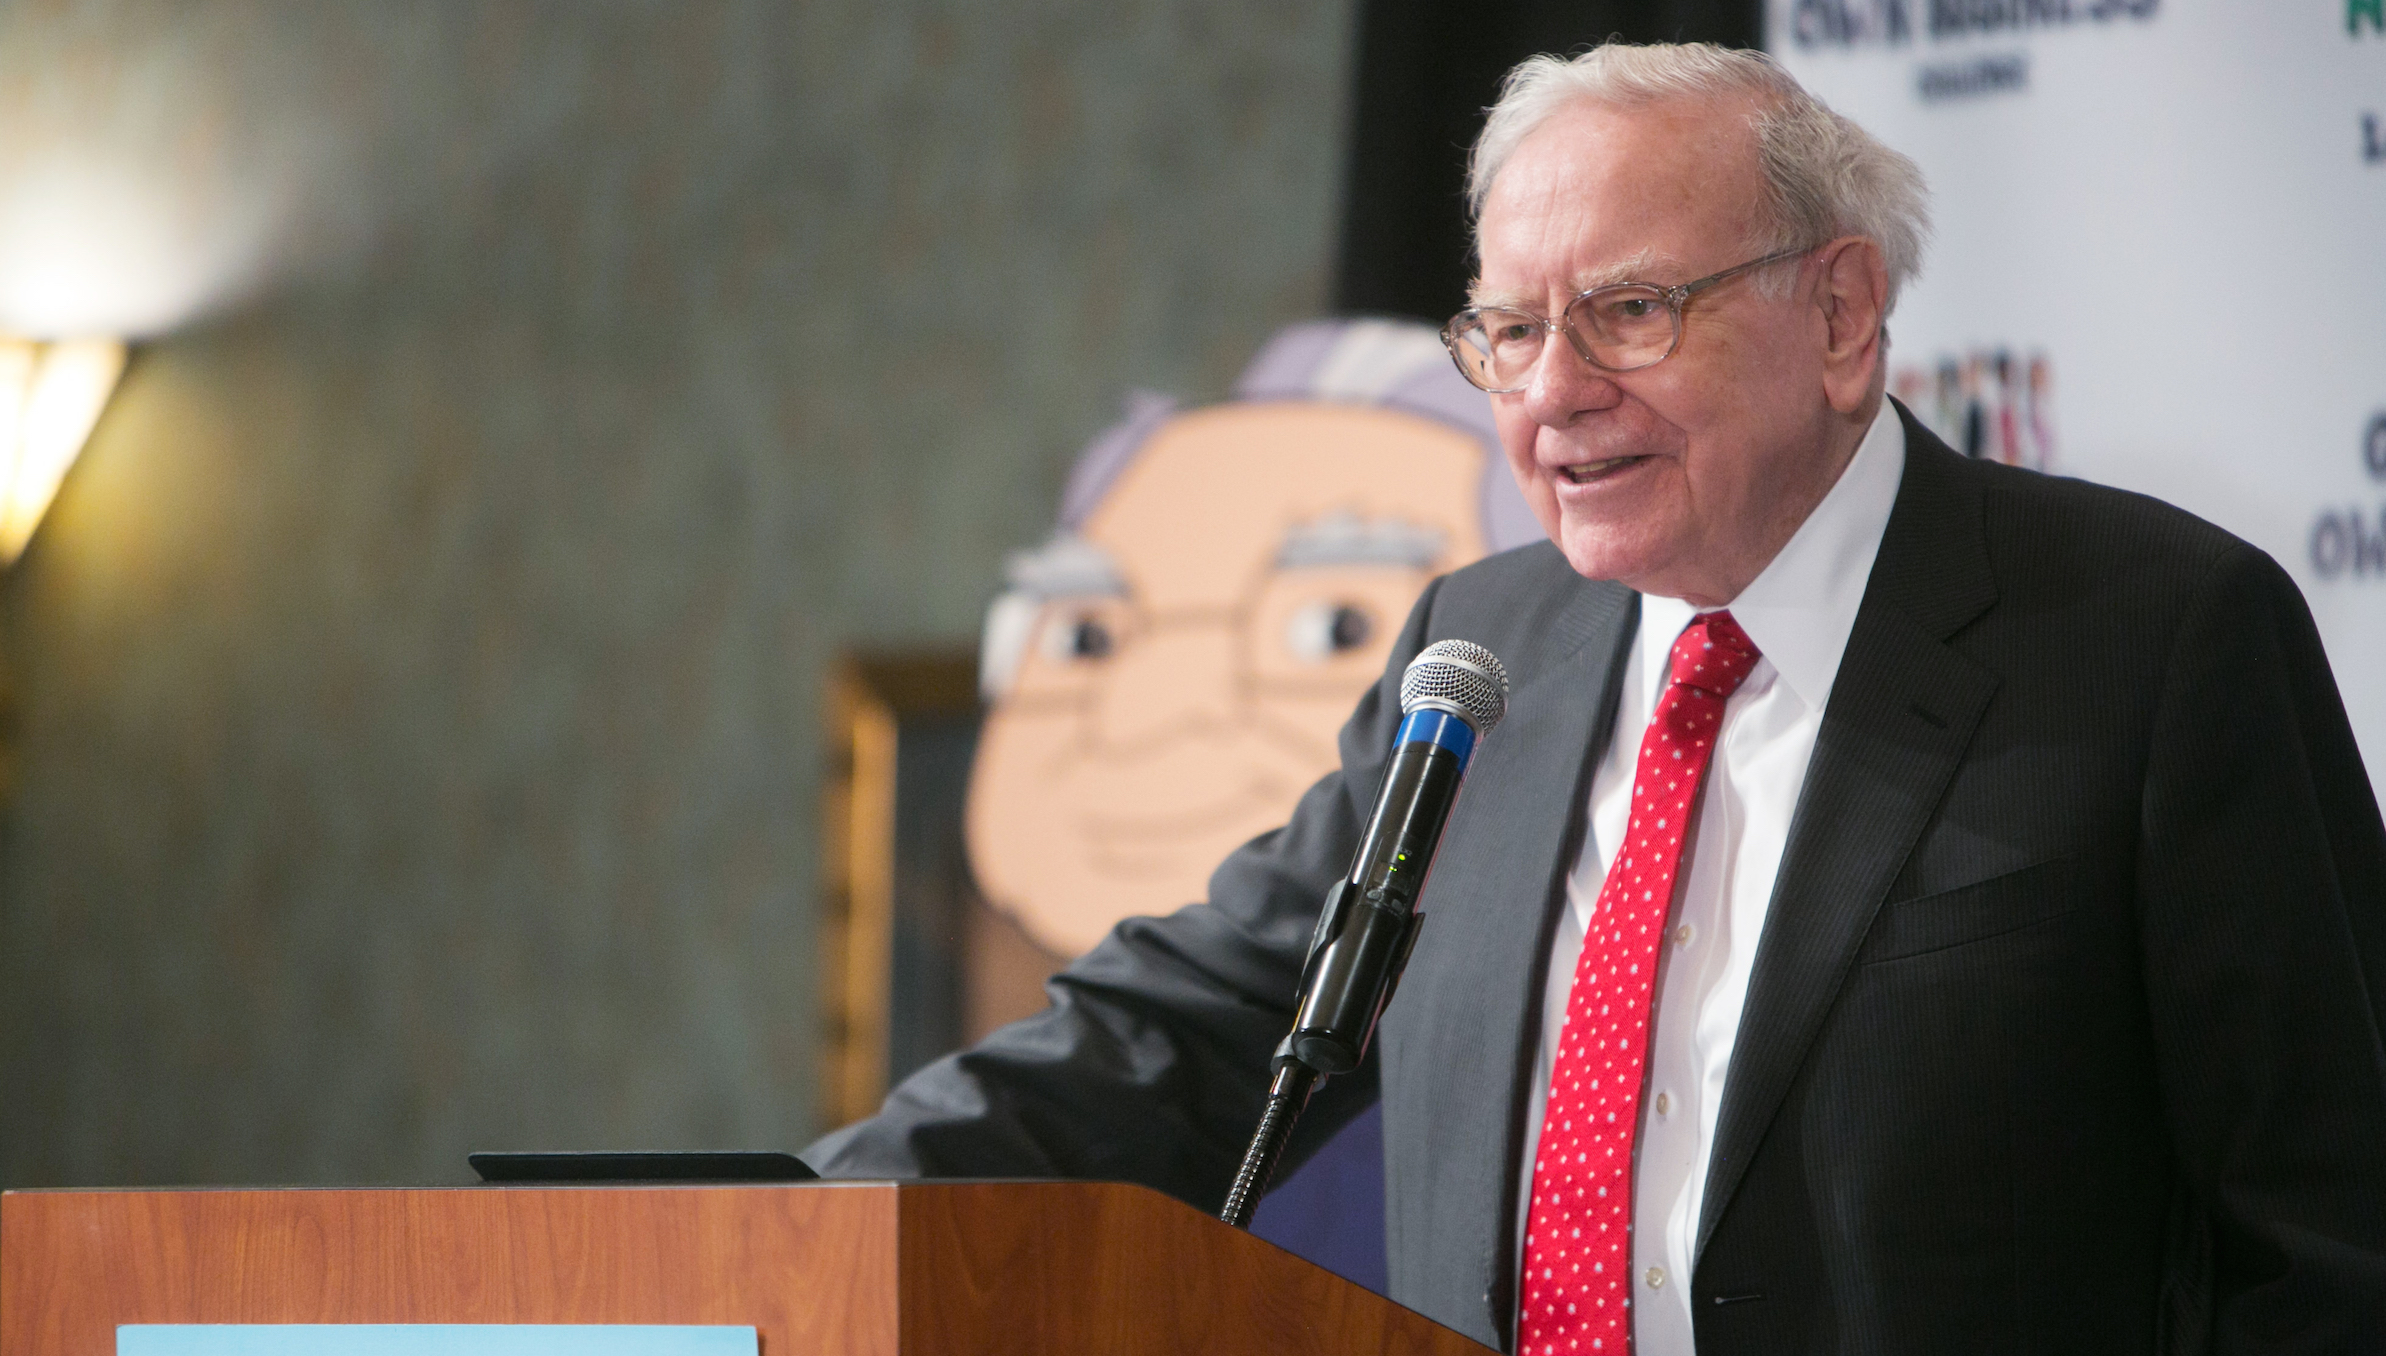 Warren Buffett speaks at his Secret Millionaires Club 'Grow Your Own Business Challenge' in Omaha, Nebraska, United States, May 18, 2015. The contest, in its fourth year, attracted entries from more than 4,000 boys and girls ages 7 to 14. The top entrants flew to Omaha, Nebraska to be judged and show Buffett their ideas.   REUTERS/Lane Hickenbottom - RTX1DJKJ